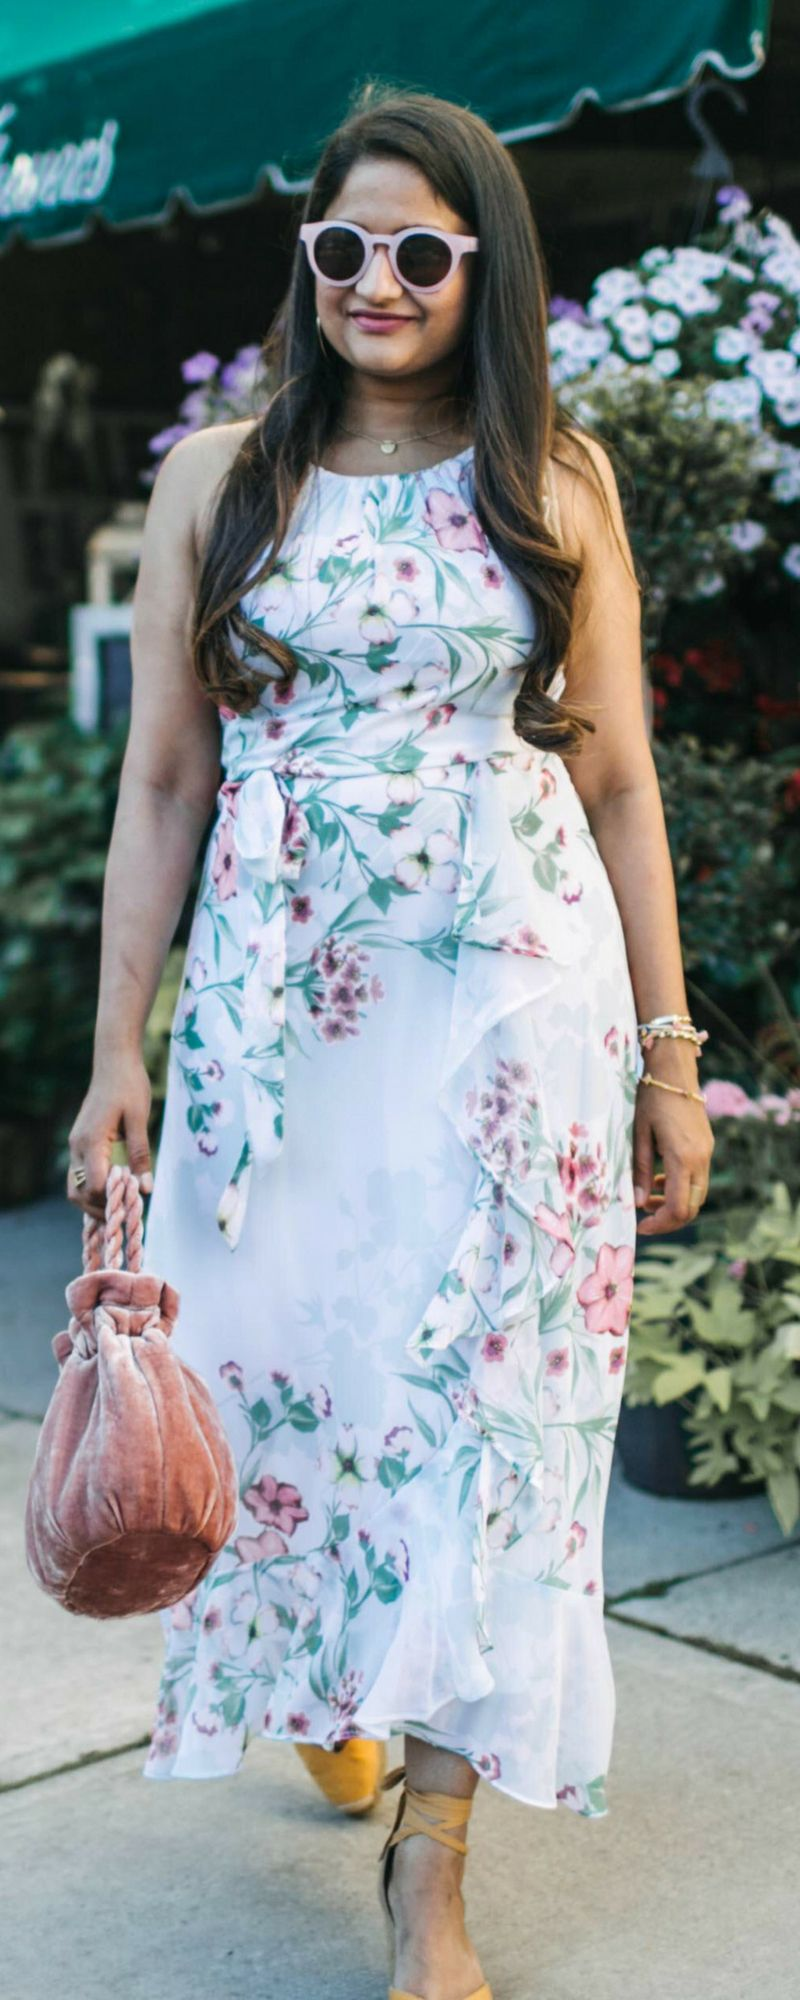 Wedding day guest dresses   Cute Wedding Guest Dresses for Summer  Dreamingloud